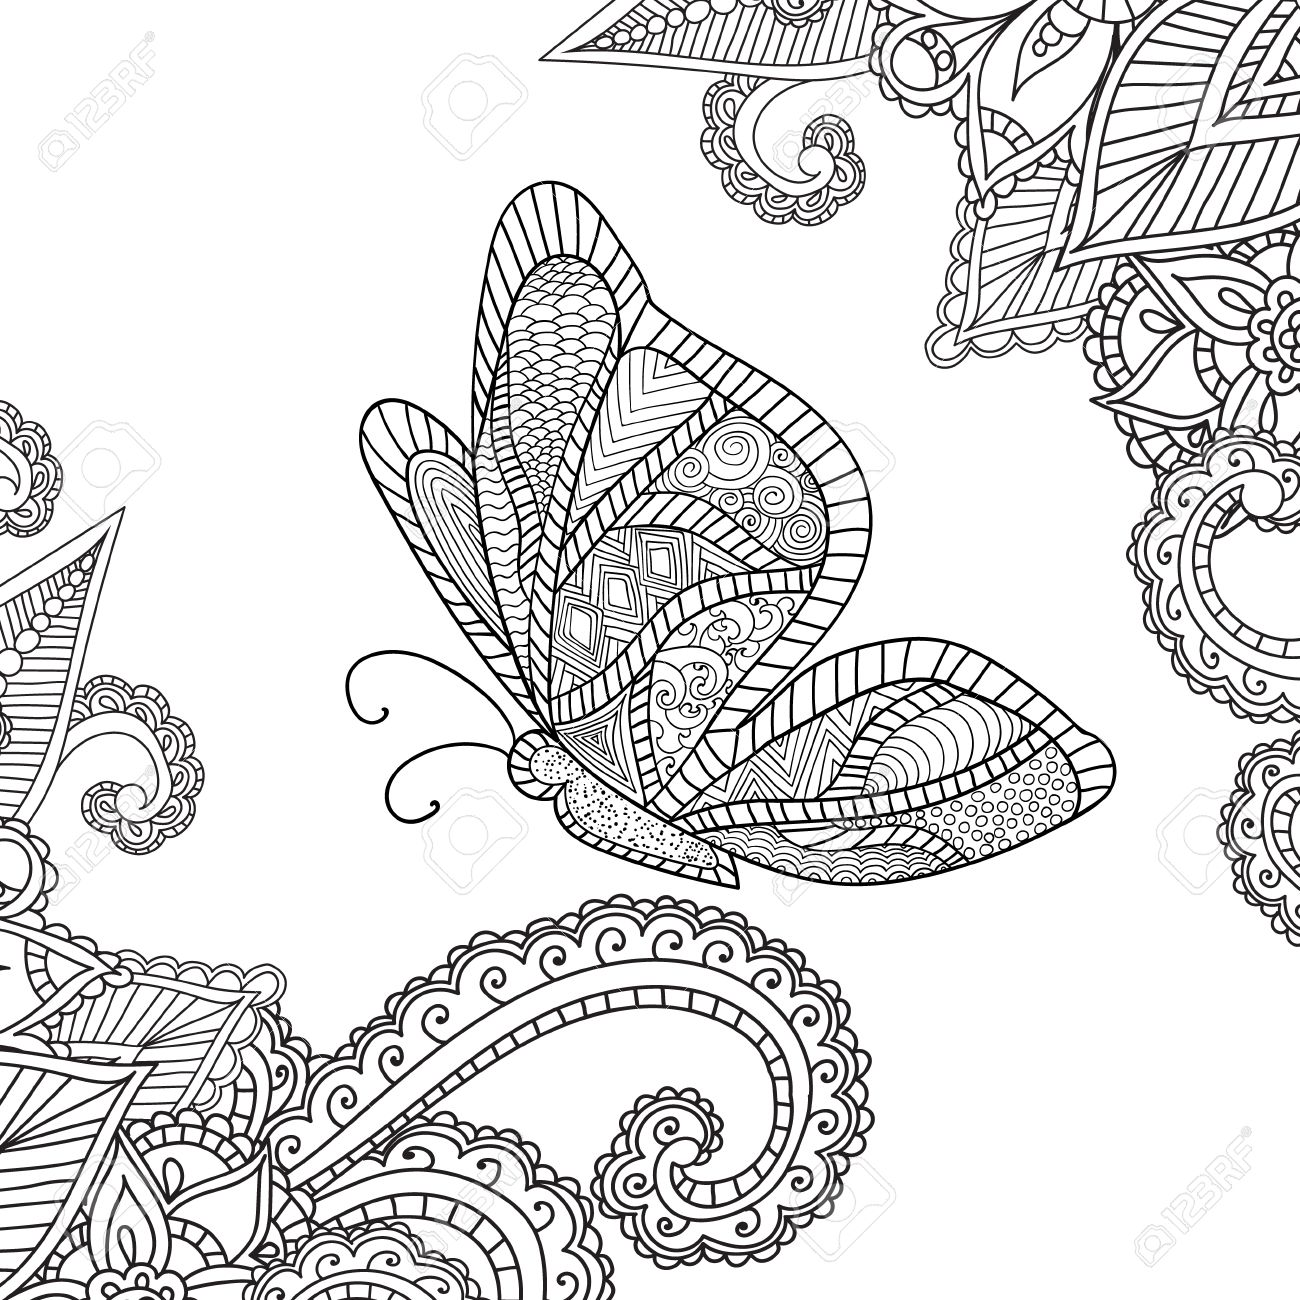 Malvorlagen Für Adults Henna Mehndi Doodles Abstract Floral Paisley